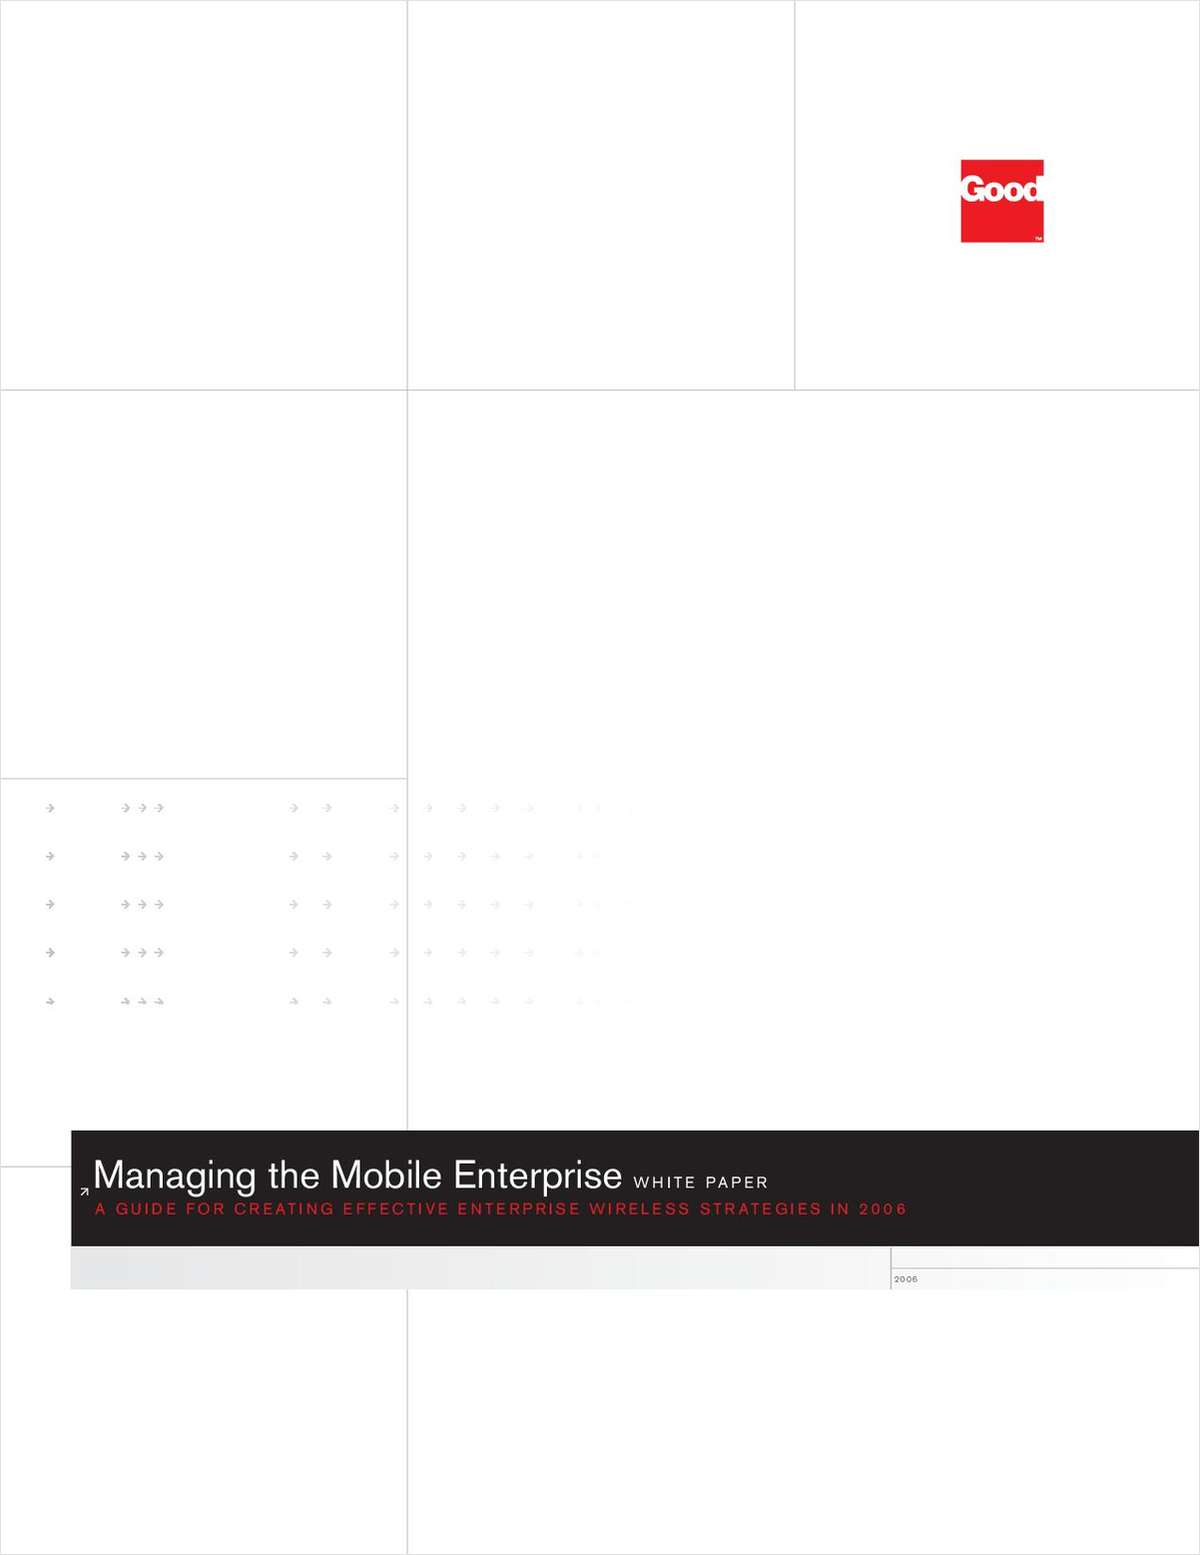 Managing the Mobile Enterprise: Now and in the Future